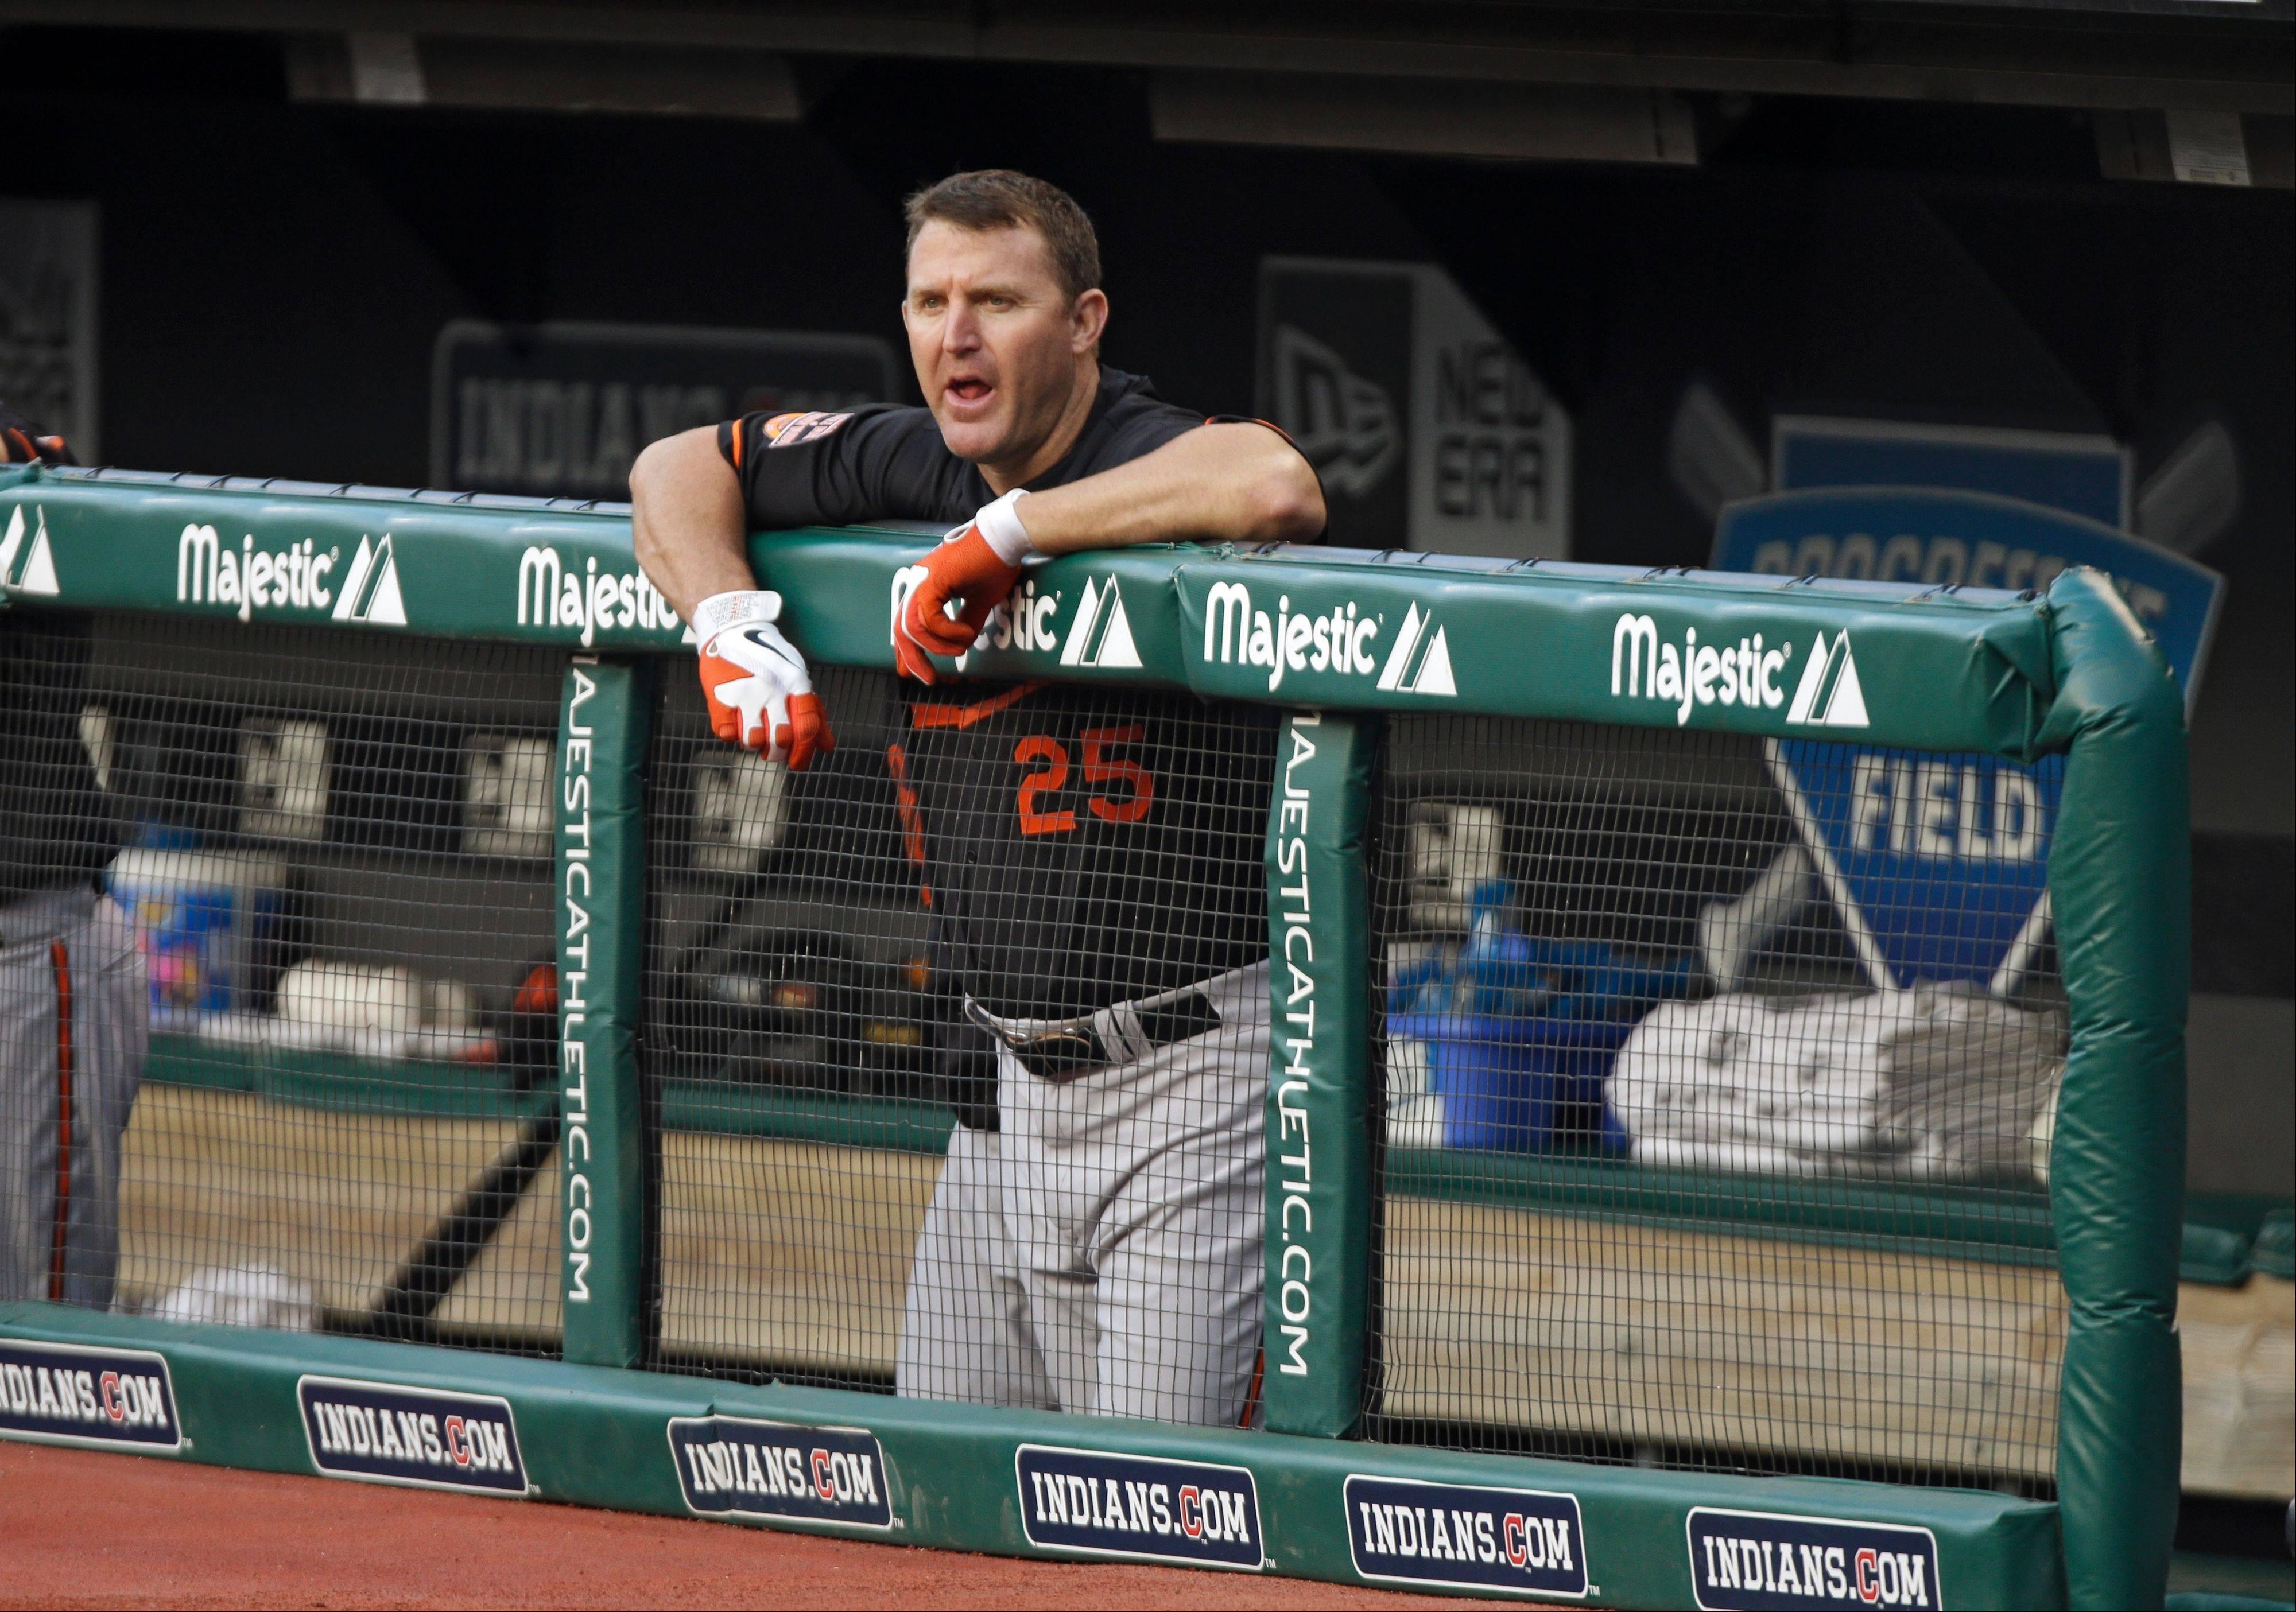 He finished the season with the Baltimore Orioles, but slugger Jim Thome doesn't have a team — yet. The 42-year-old former White Sox DH said he's staying in shape and waiting for a call.